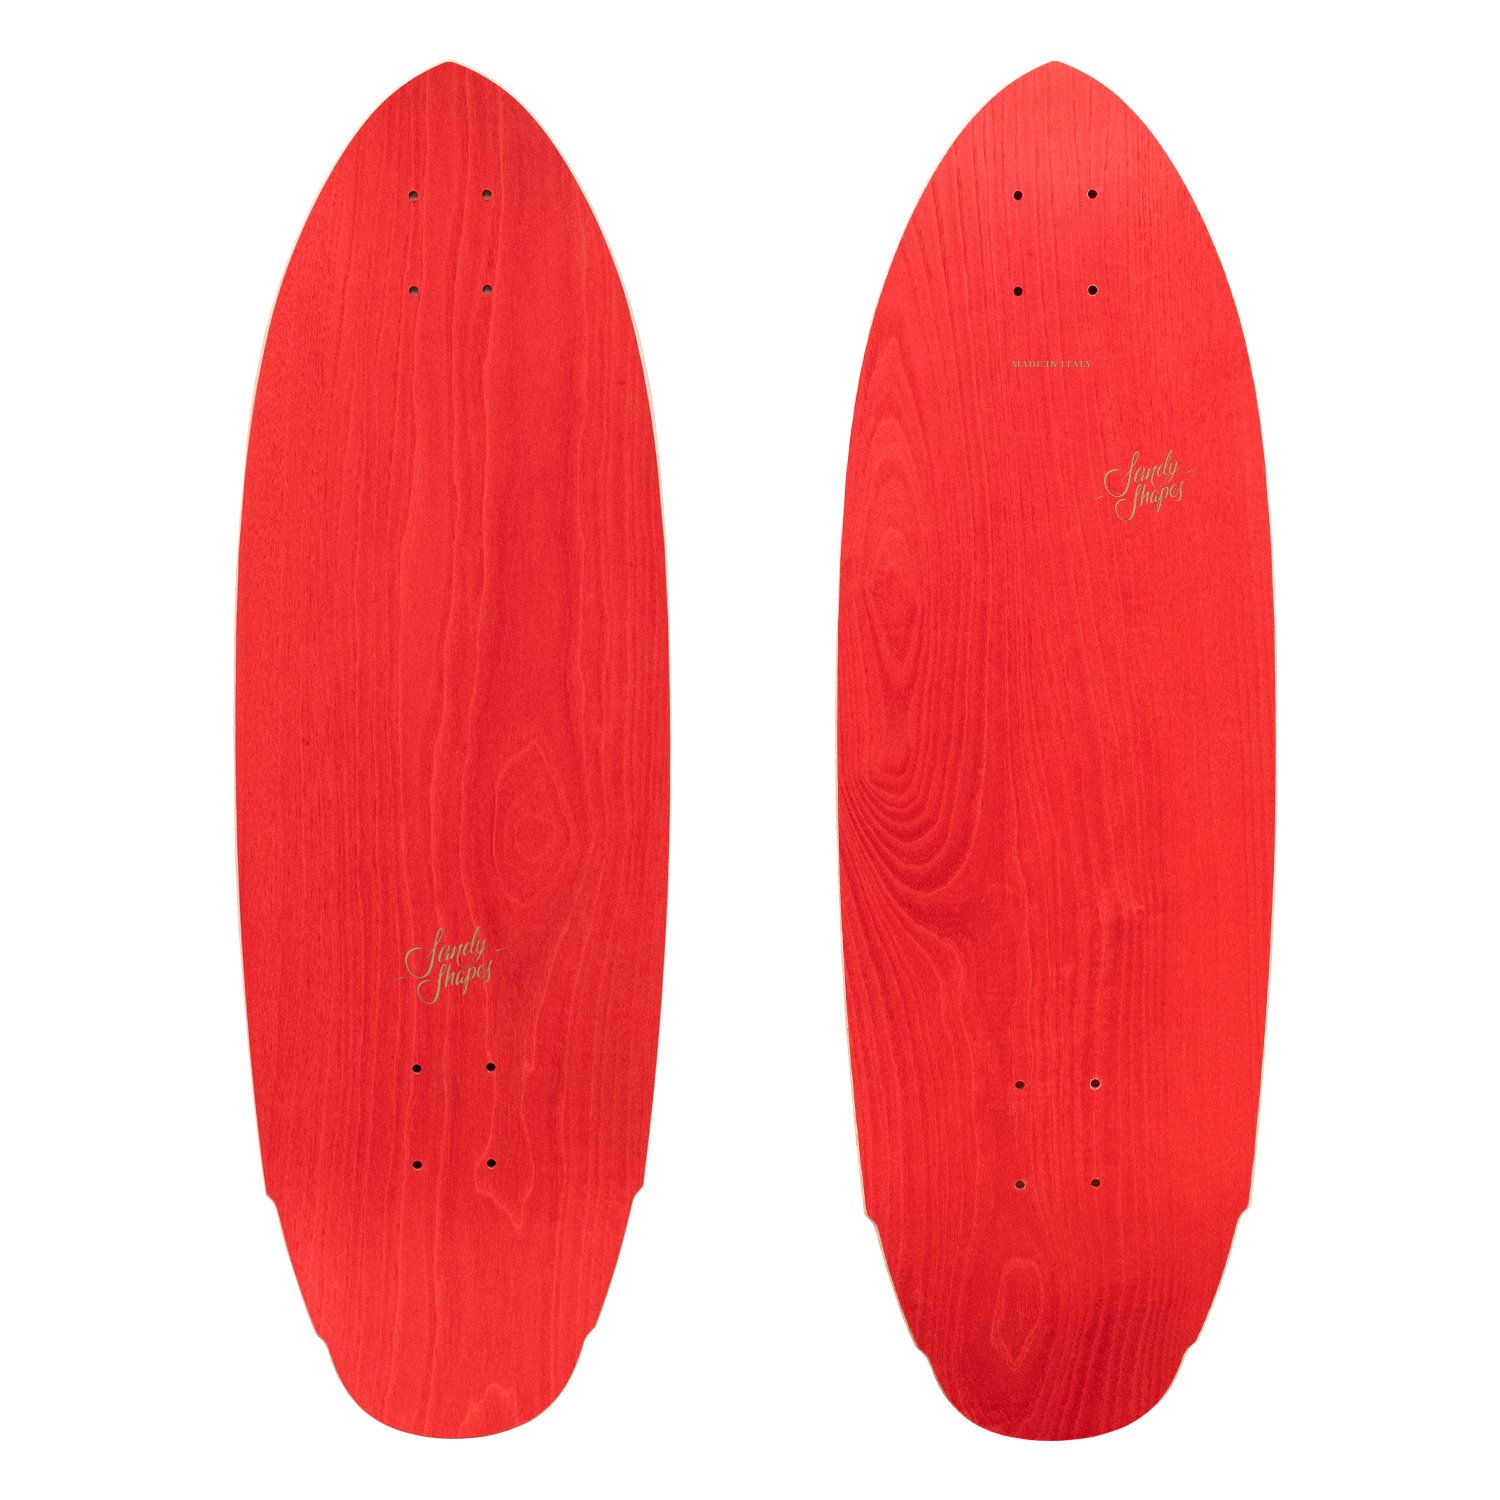 Mediterraneo: sustainable surfskate in red ash wood